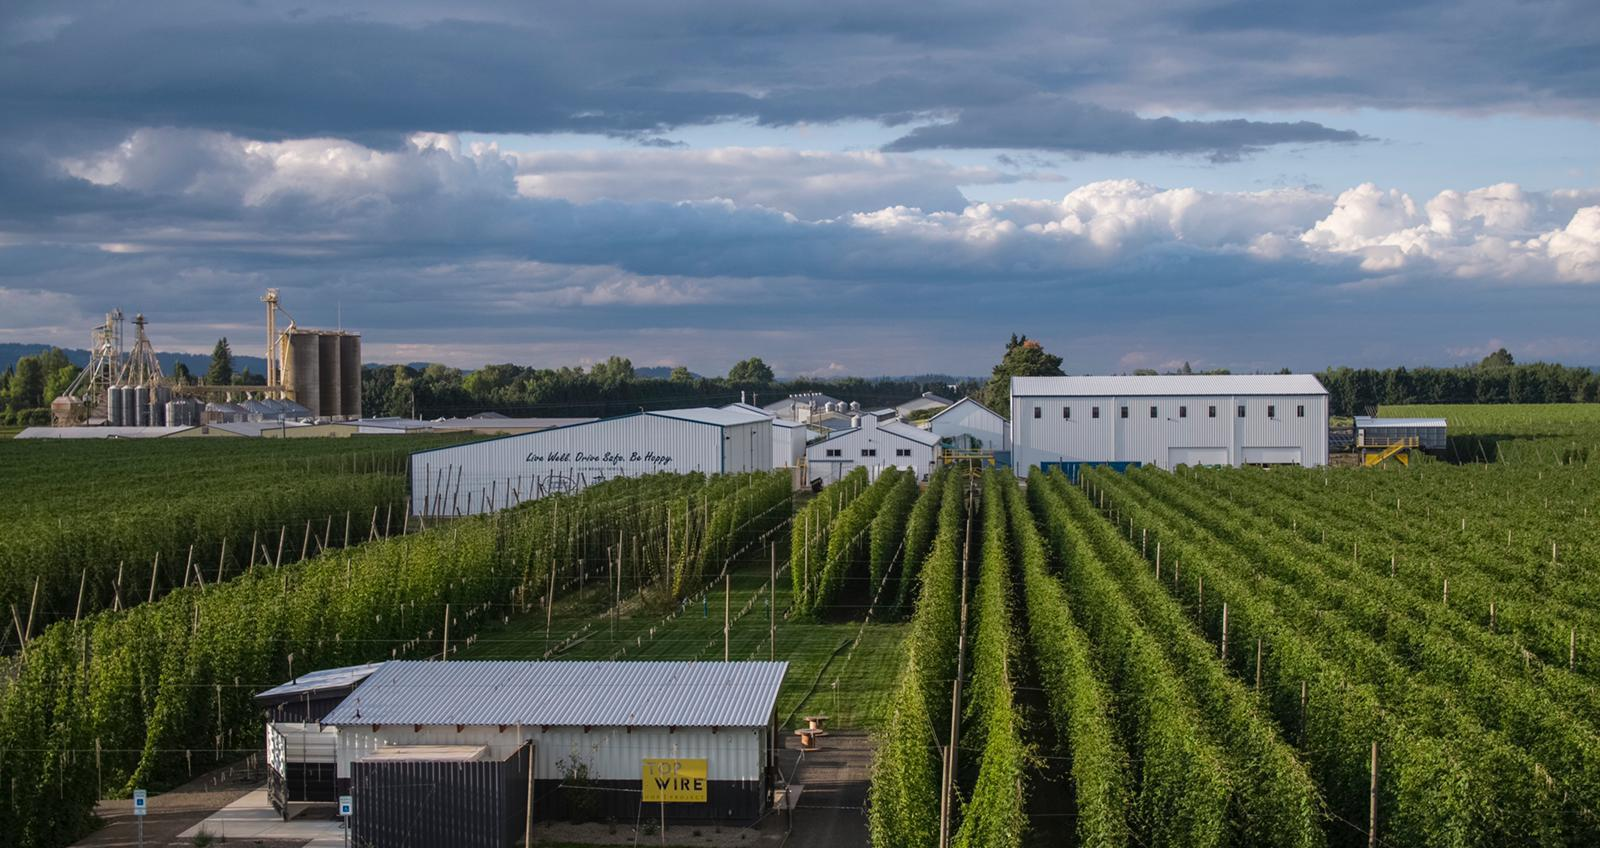 image of the hop fields courtesy of TopWire Hop Project